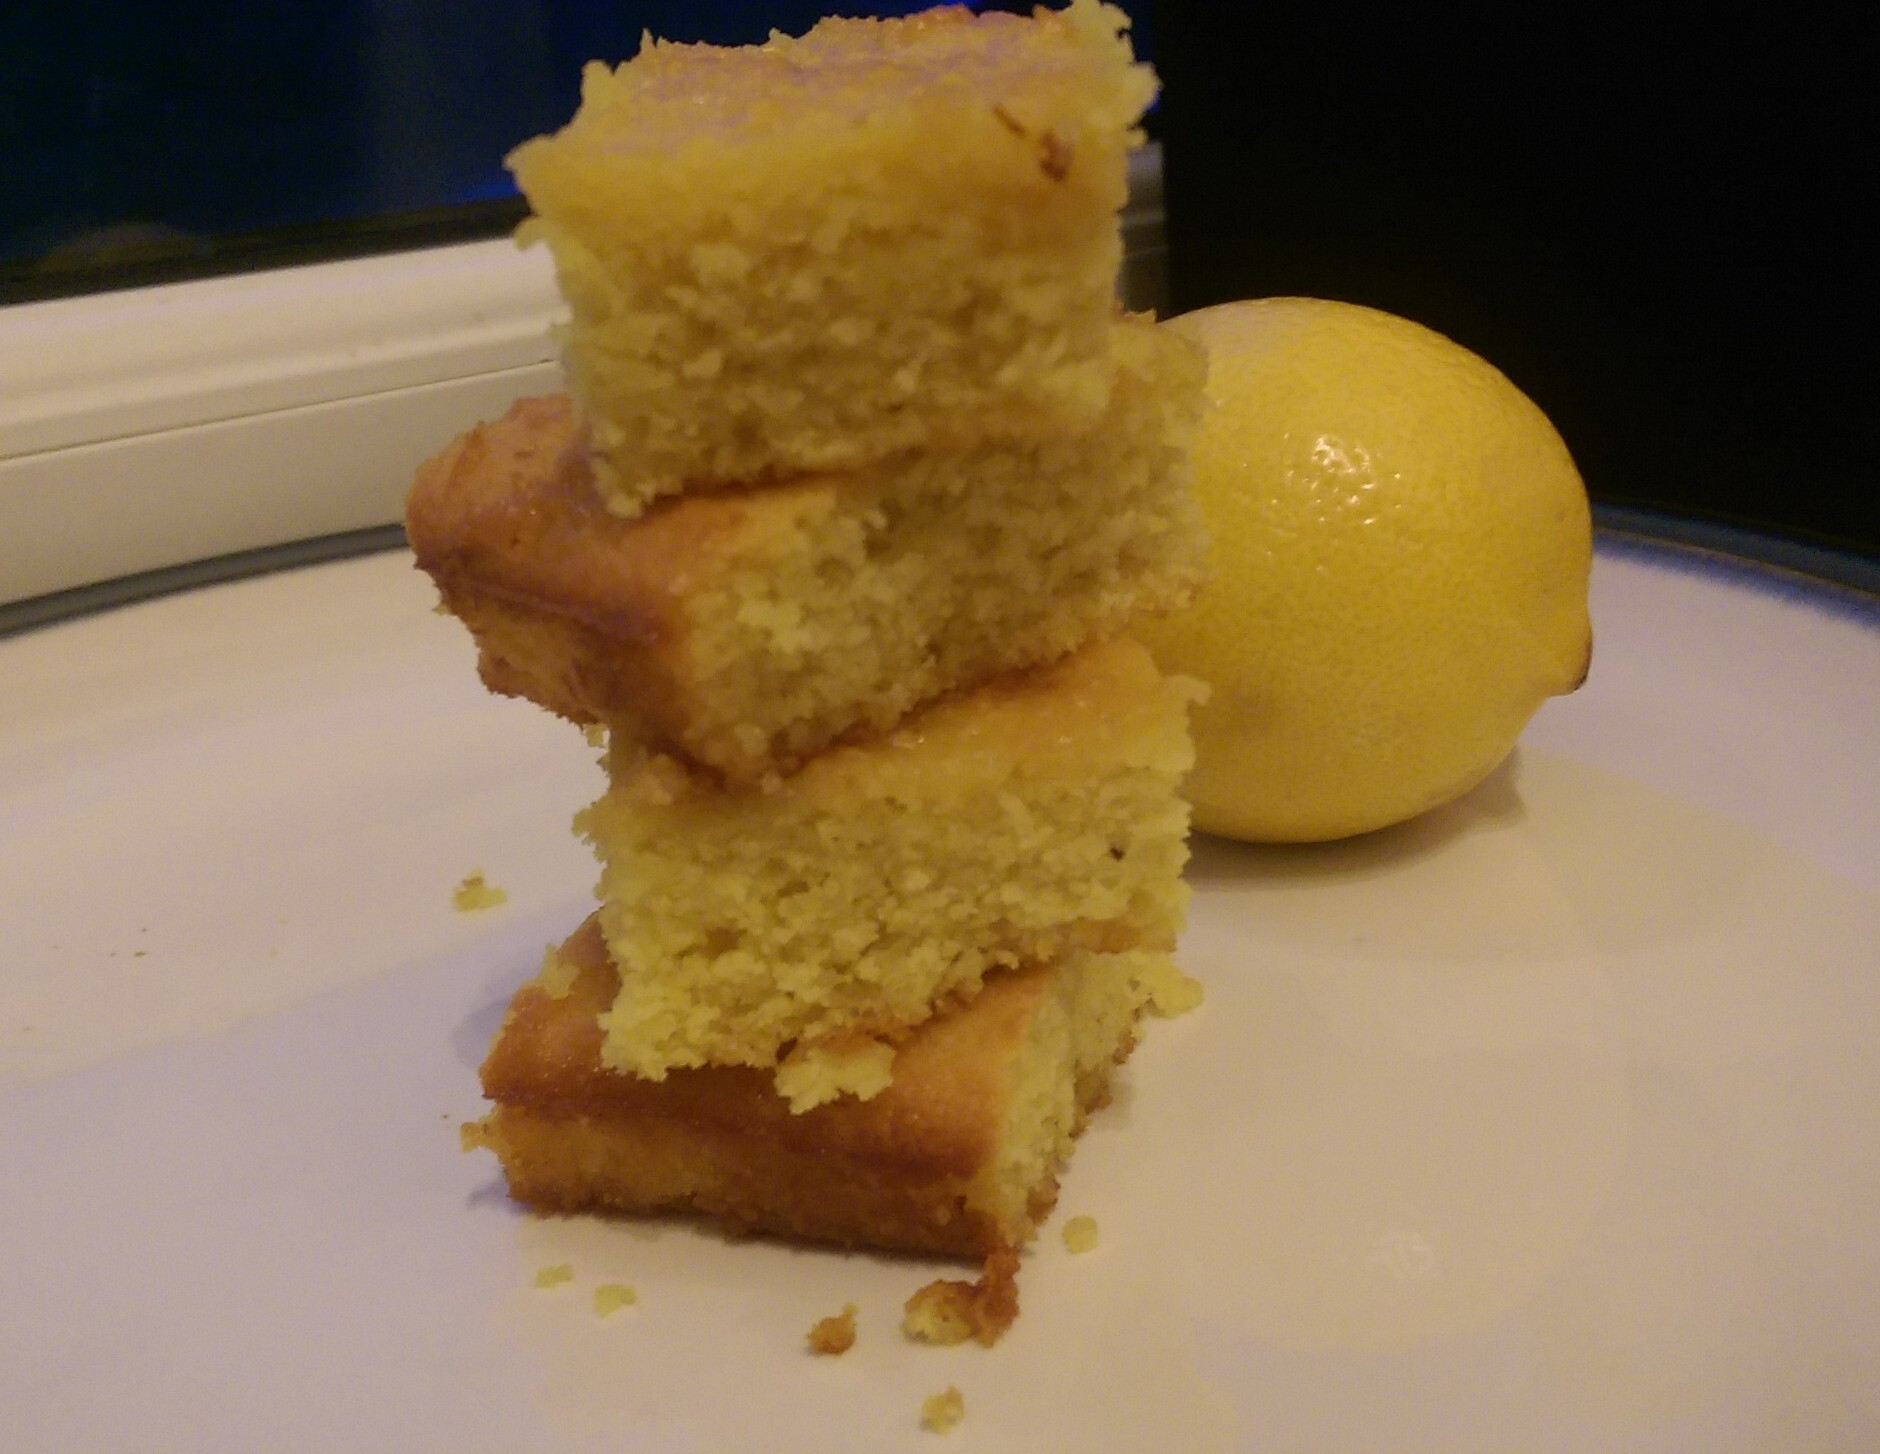 Recipe: Lemon Shizzle Cake